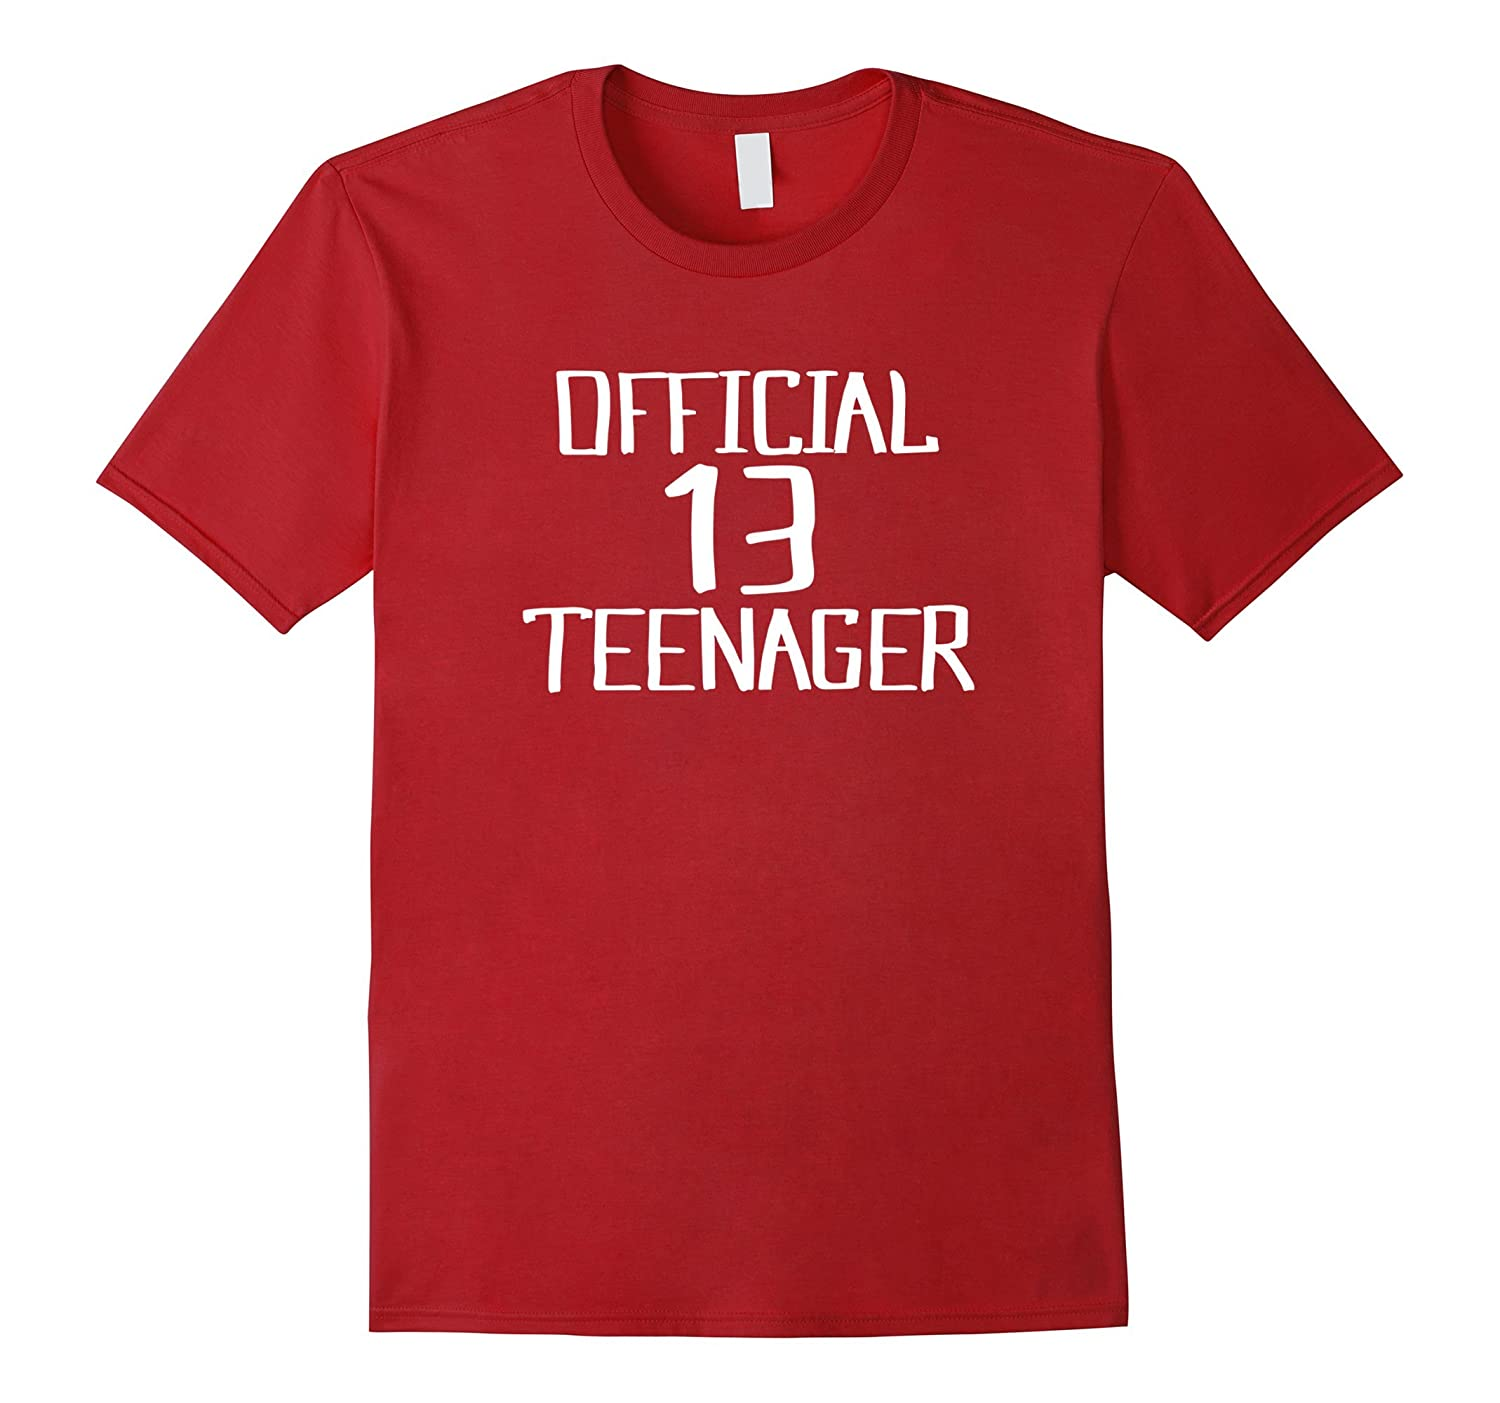 Official Teenager 13 Thirteenth Birthday Tshirt Boy